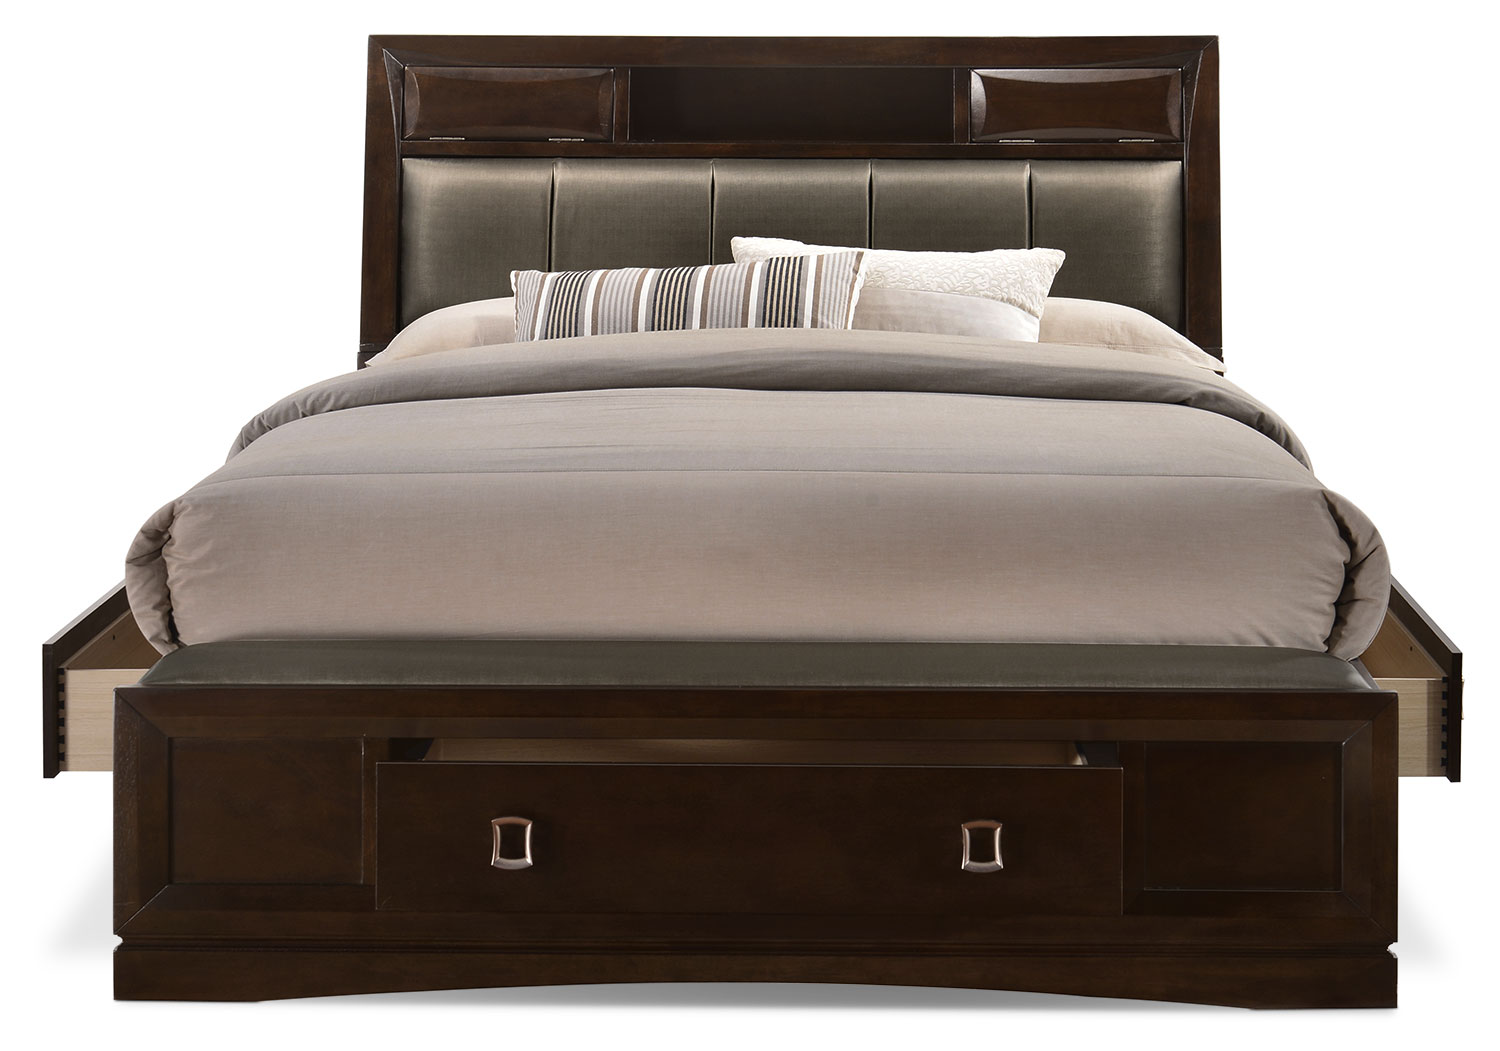 Beanston queen bookcase storage bed for Bedroom furniture queen storage bed